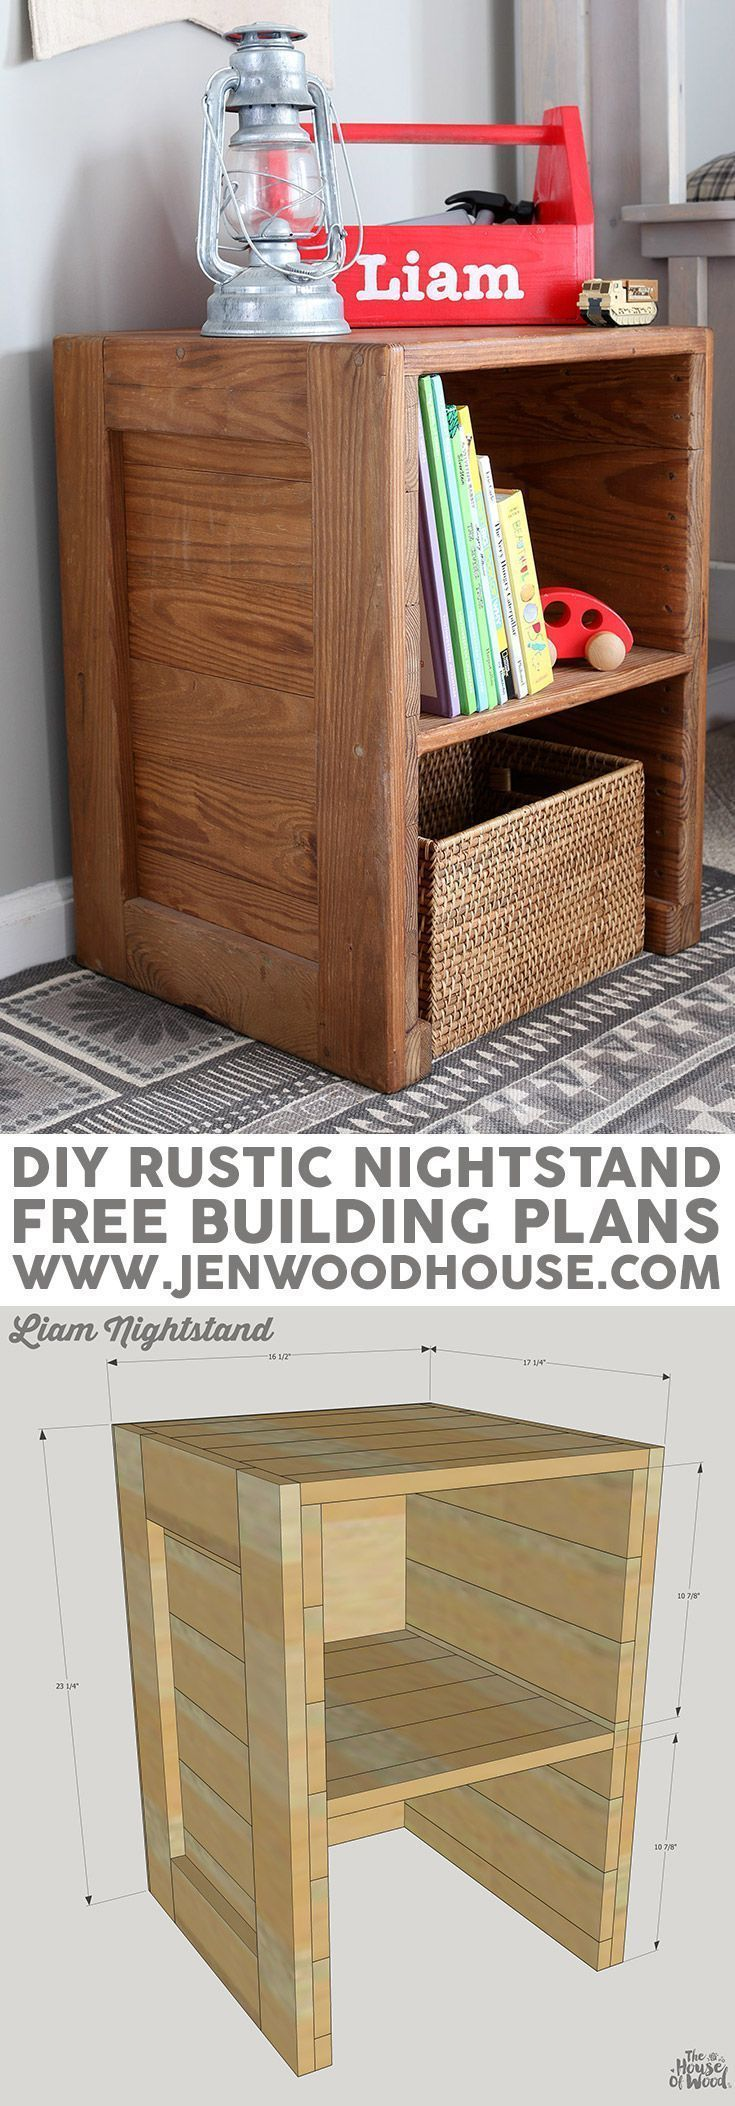 Free plans diy rustic nightstand a well creative and for Diy rustic nightstand